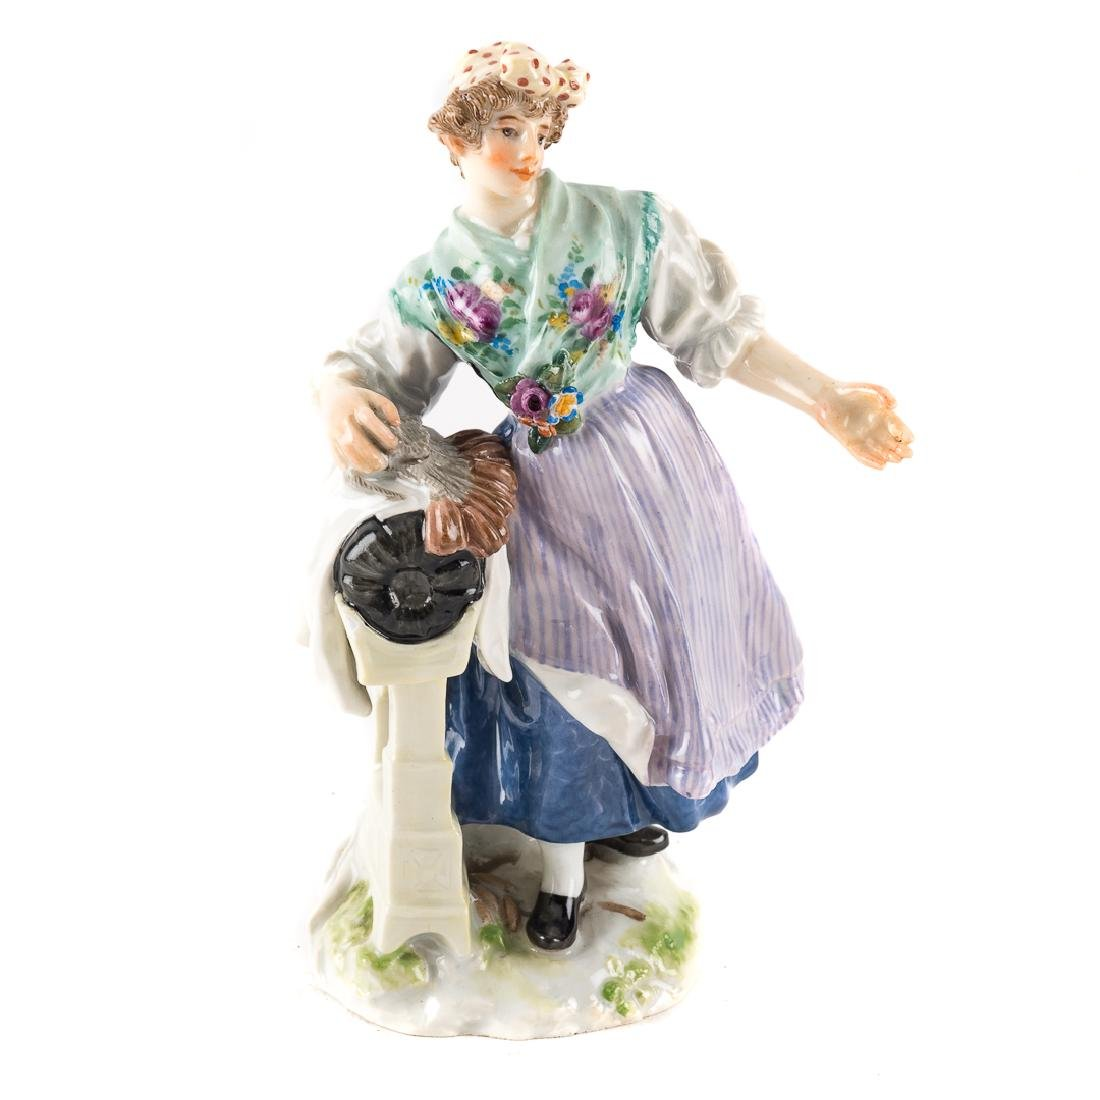 Meissen porcelain figure of a scullery maid